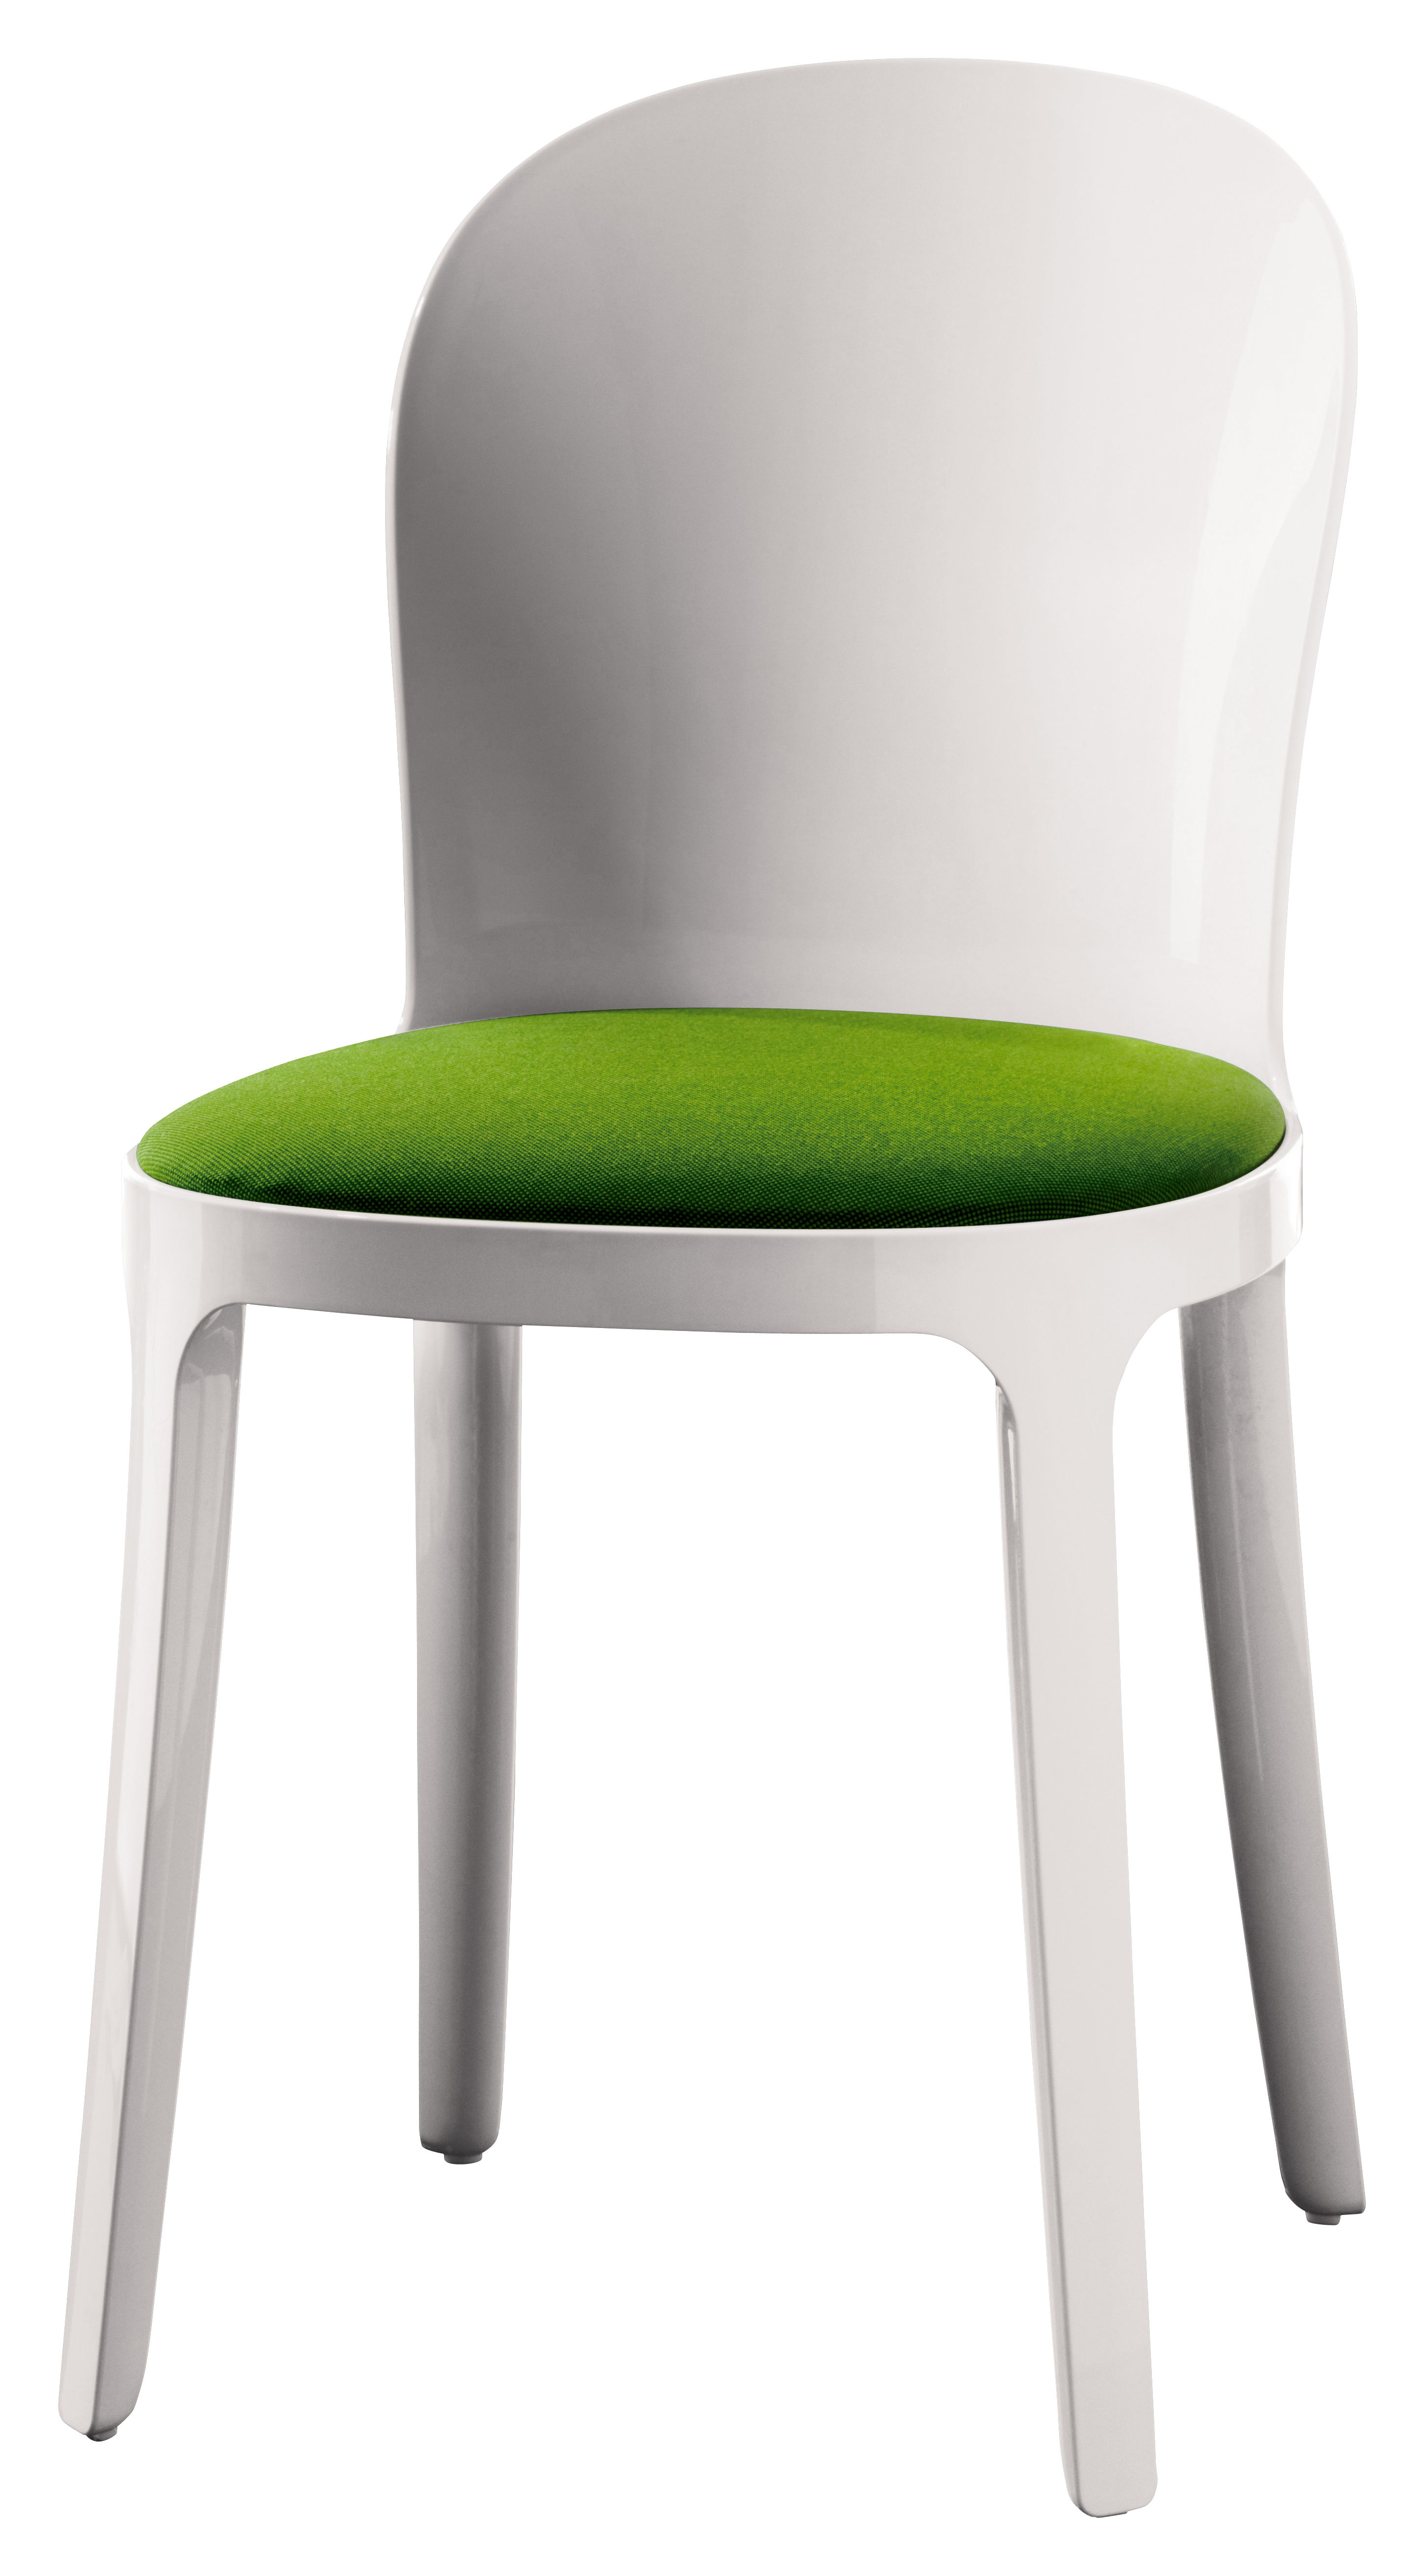 Vanity Chair Chair Opaque White Structure Opaque White Green By Magis